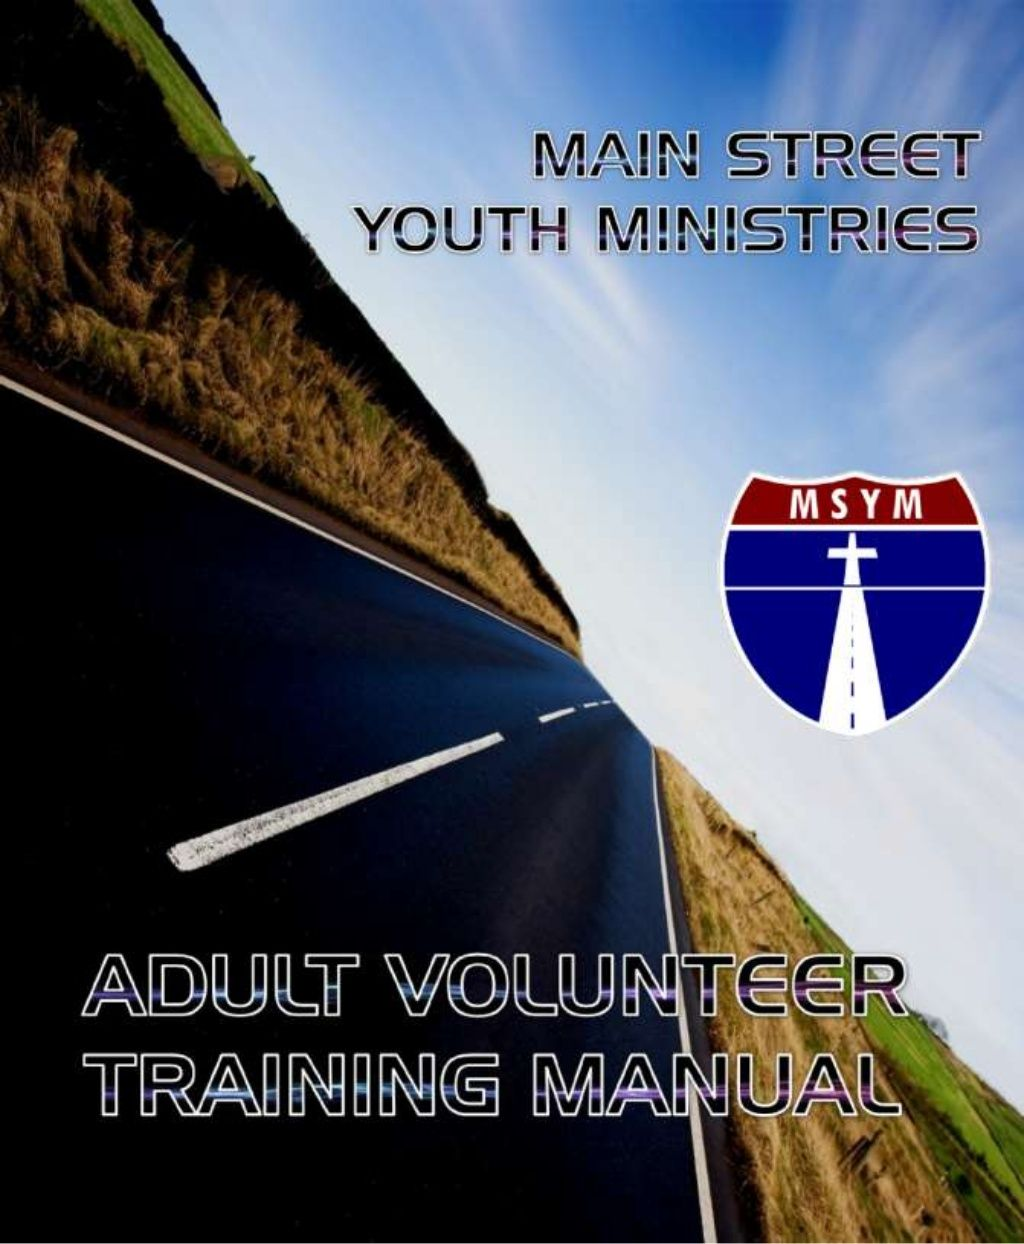 Youth Ministry Volunteer Training | Youth ministry ideas